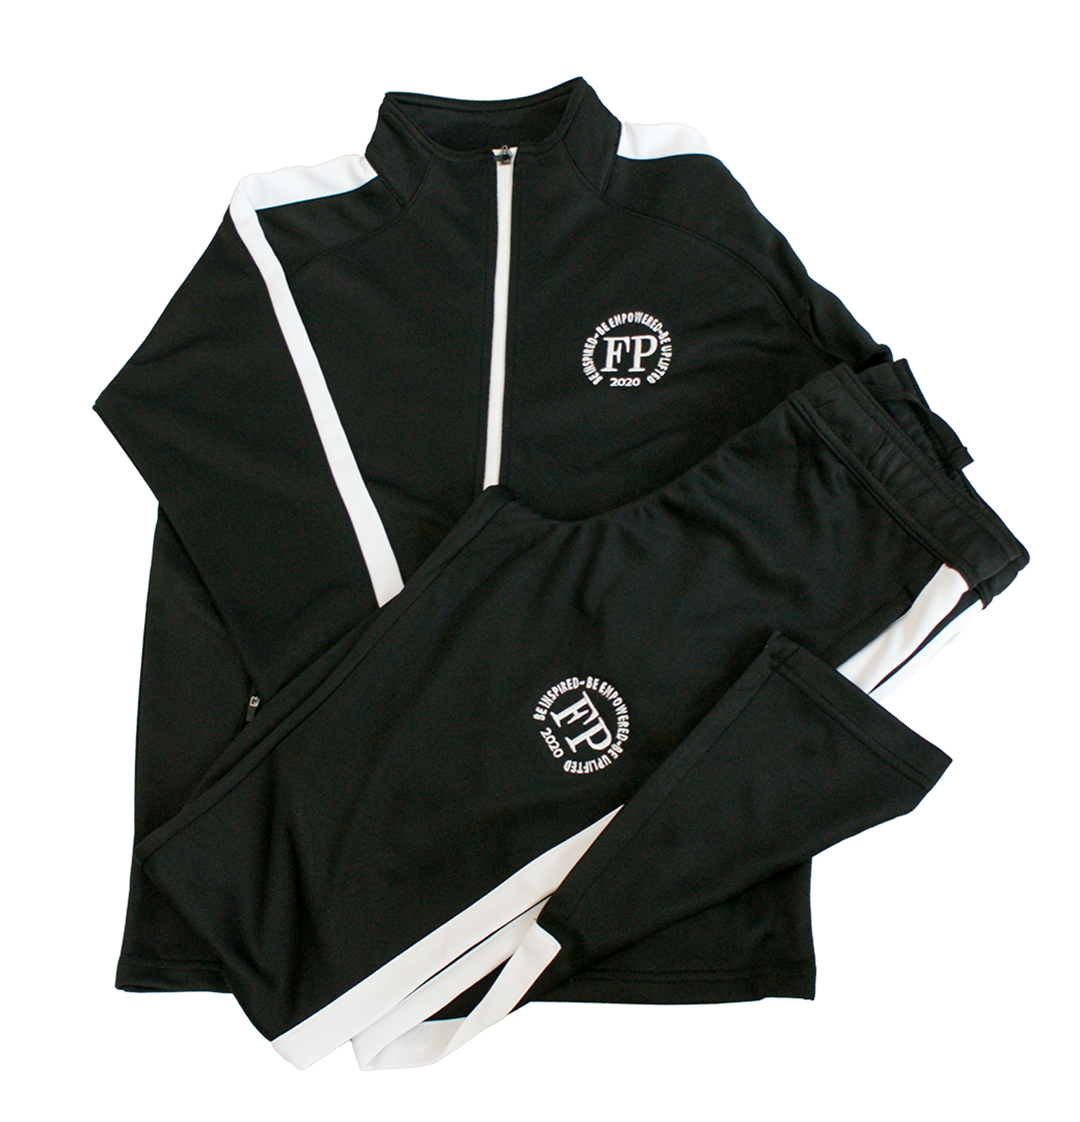 Junior Unisex - Black and White Tracksuit